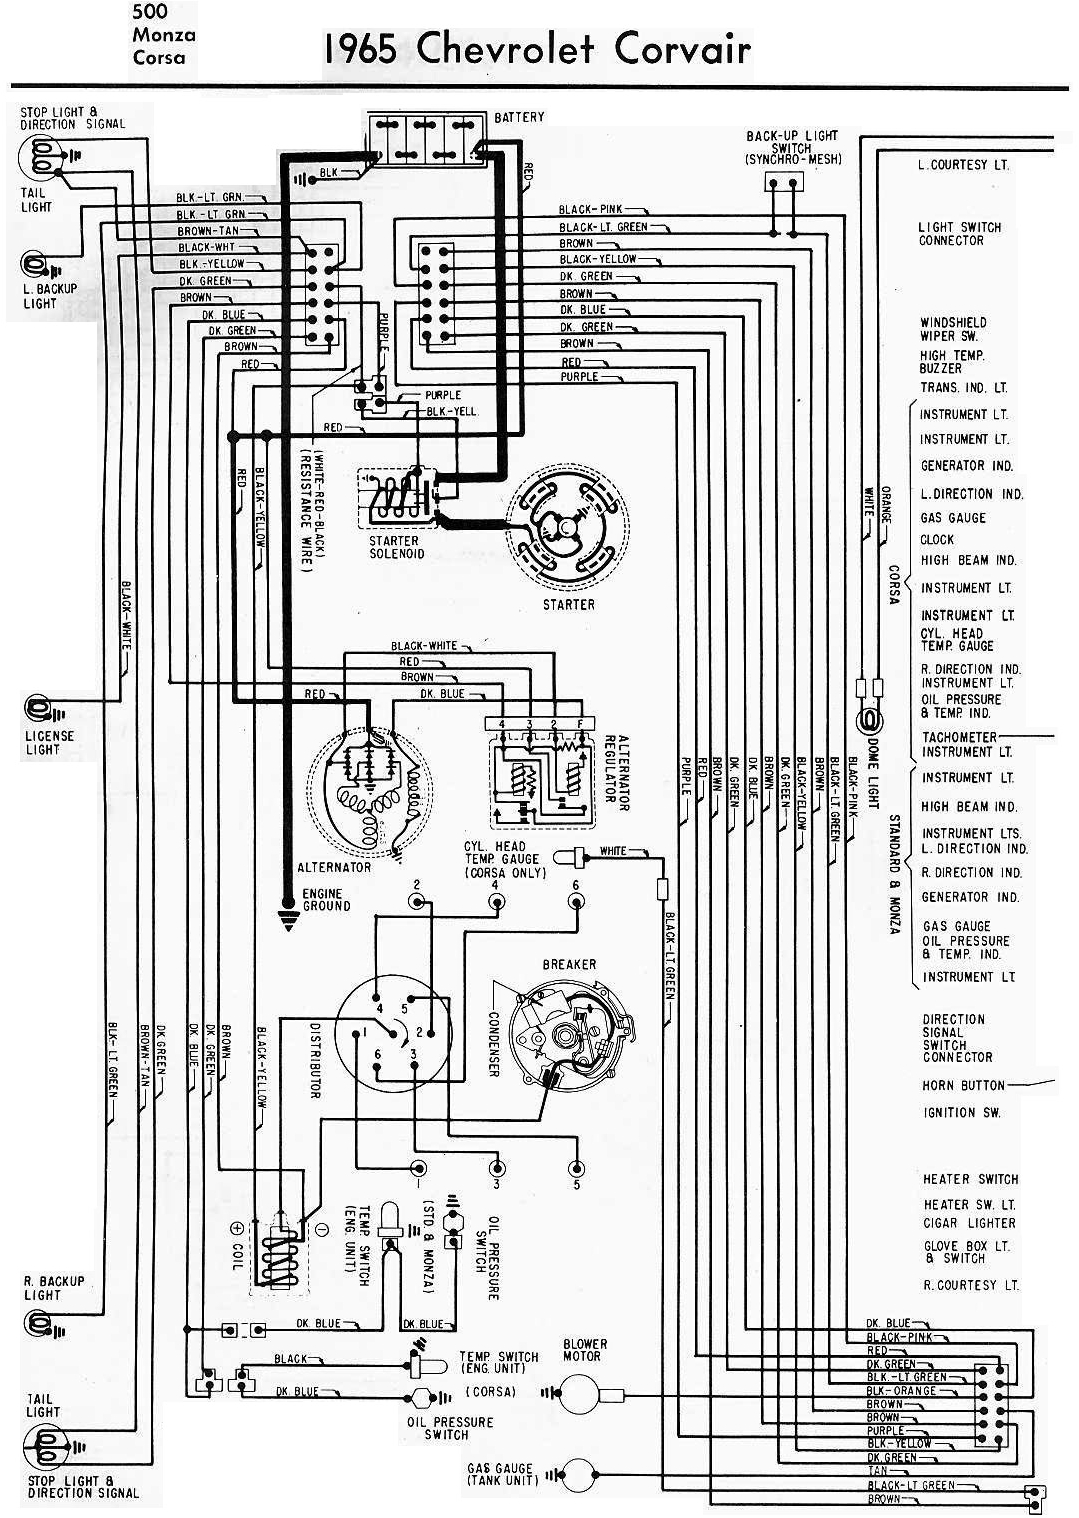 1965+Chevrolet+Corvair+Electrical+Wiring+Diagram 1965 chevrolet corvair electrical wiring diagram all about 1964 corvair wiring diagram at love-stories.co